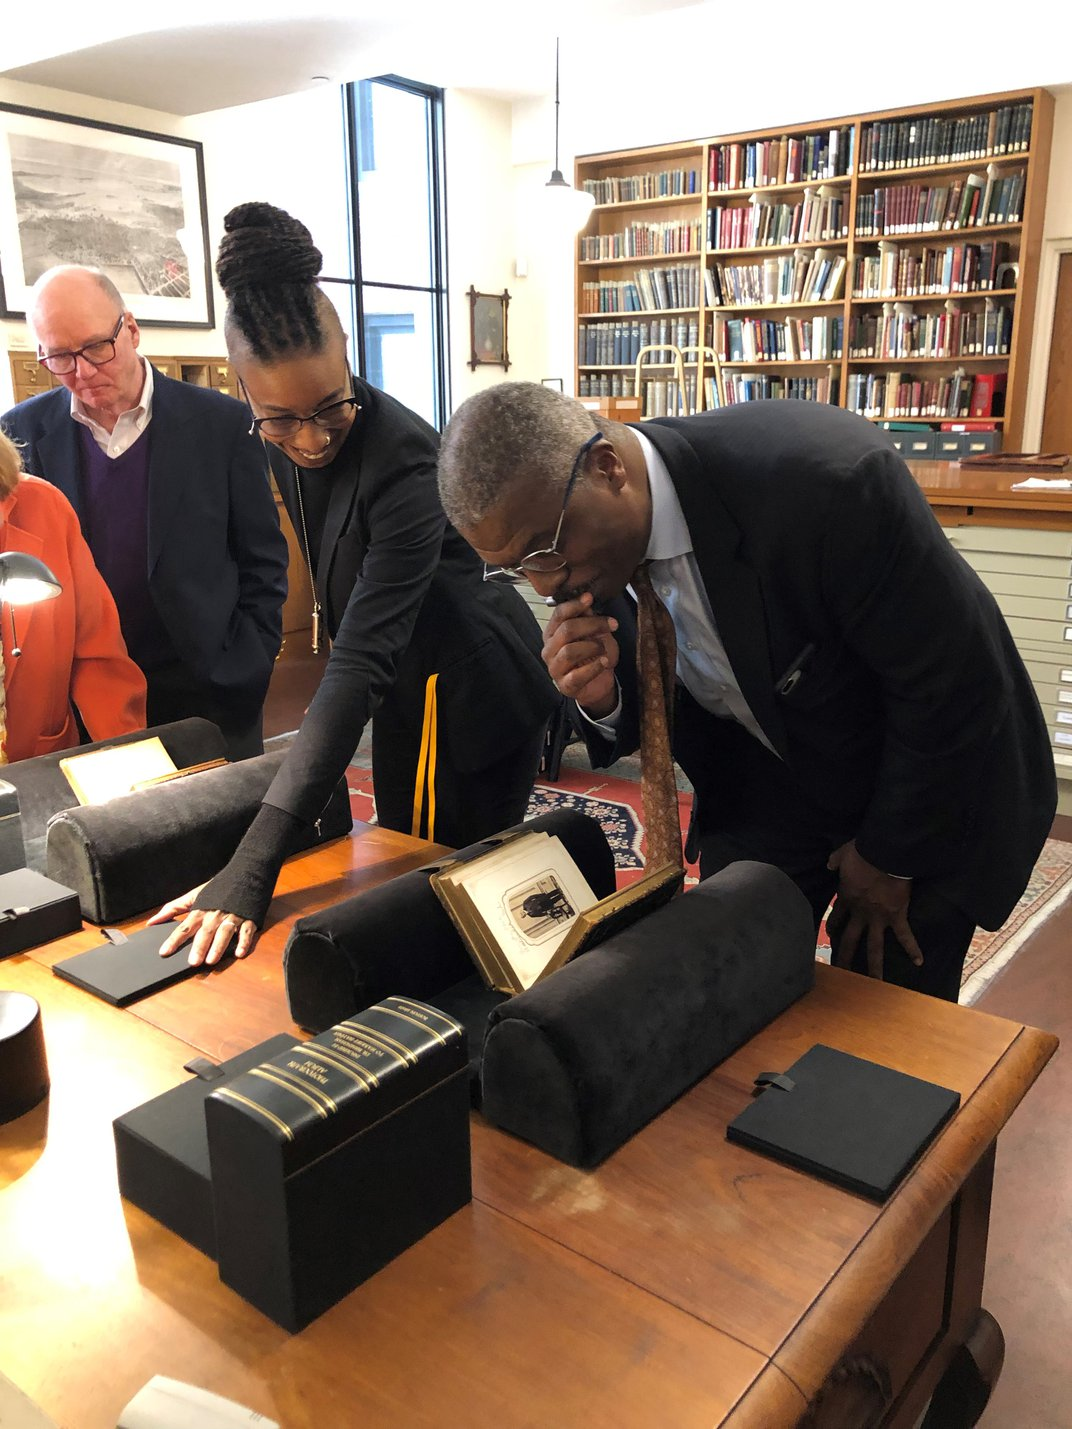 These Photo Albums Offer a Rare Glimpse of 19th-Century Boston's Black Community